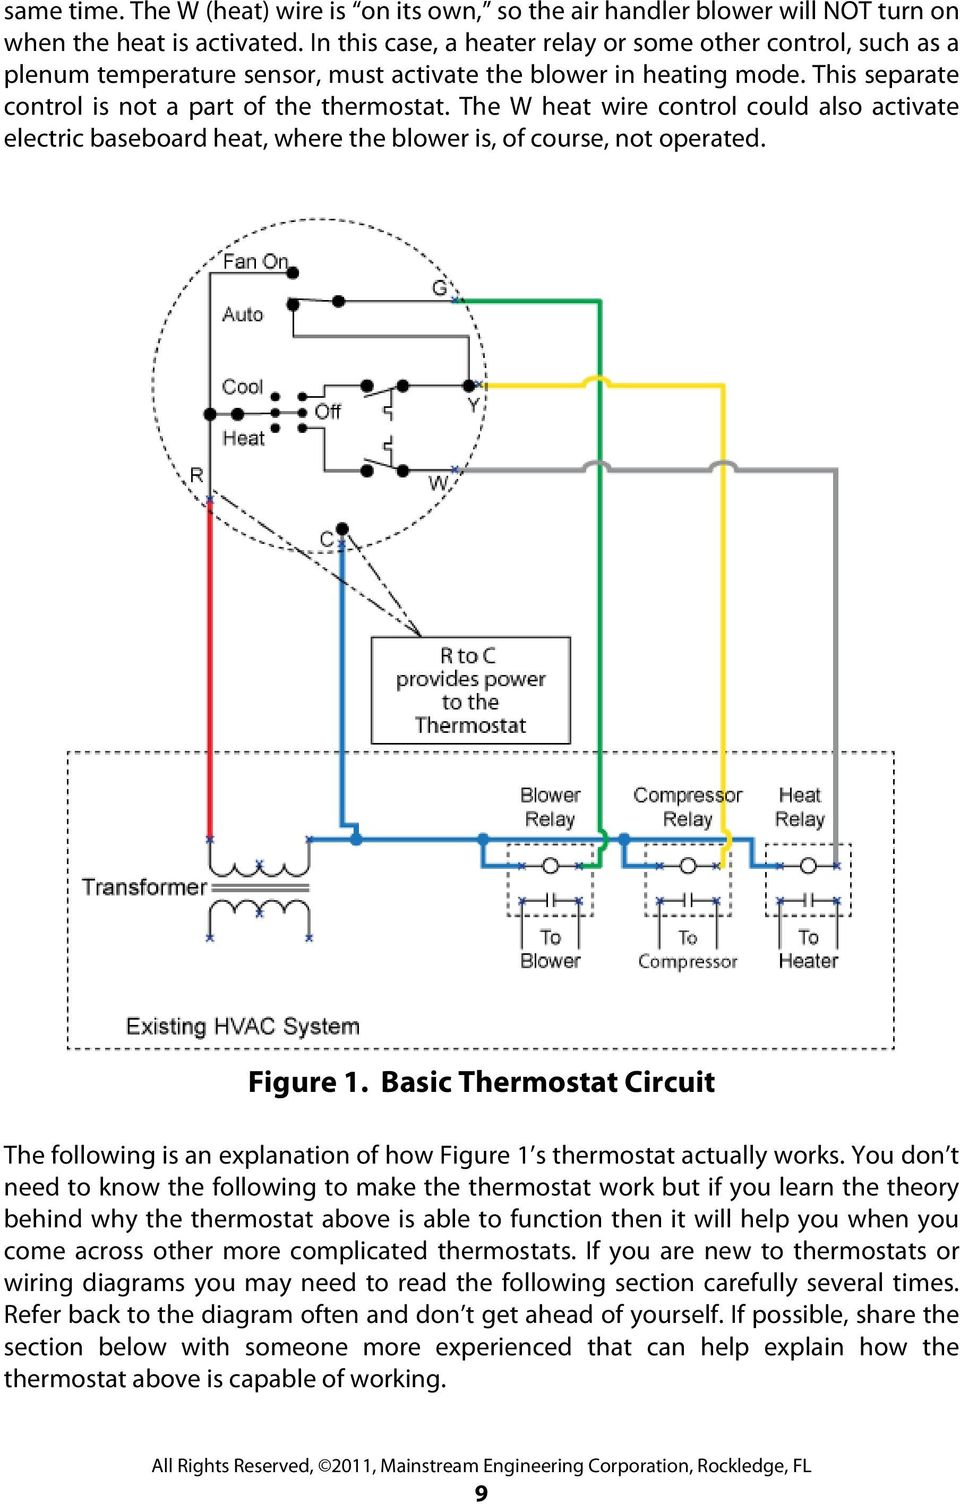 Thermostatic Wiring Principles By Bob Scaringe Phd Pe Pdf Electric Heat Relay The W Wire Control Could Also Activate Baseboard Where Blower Is